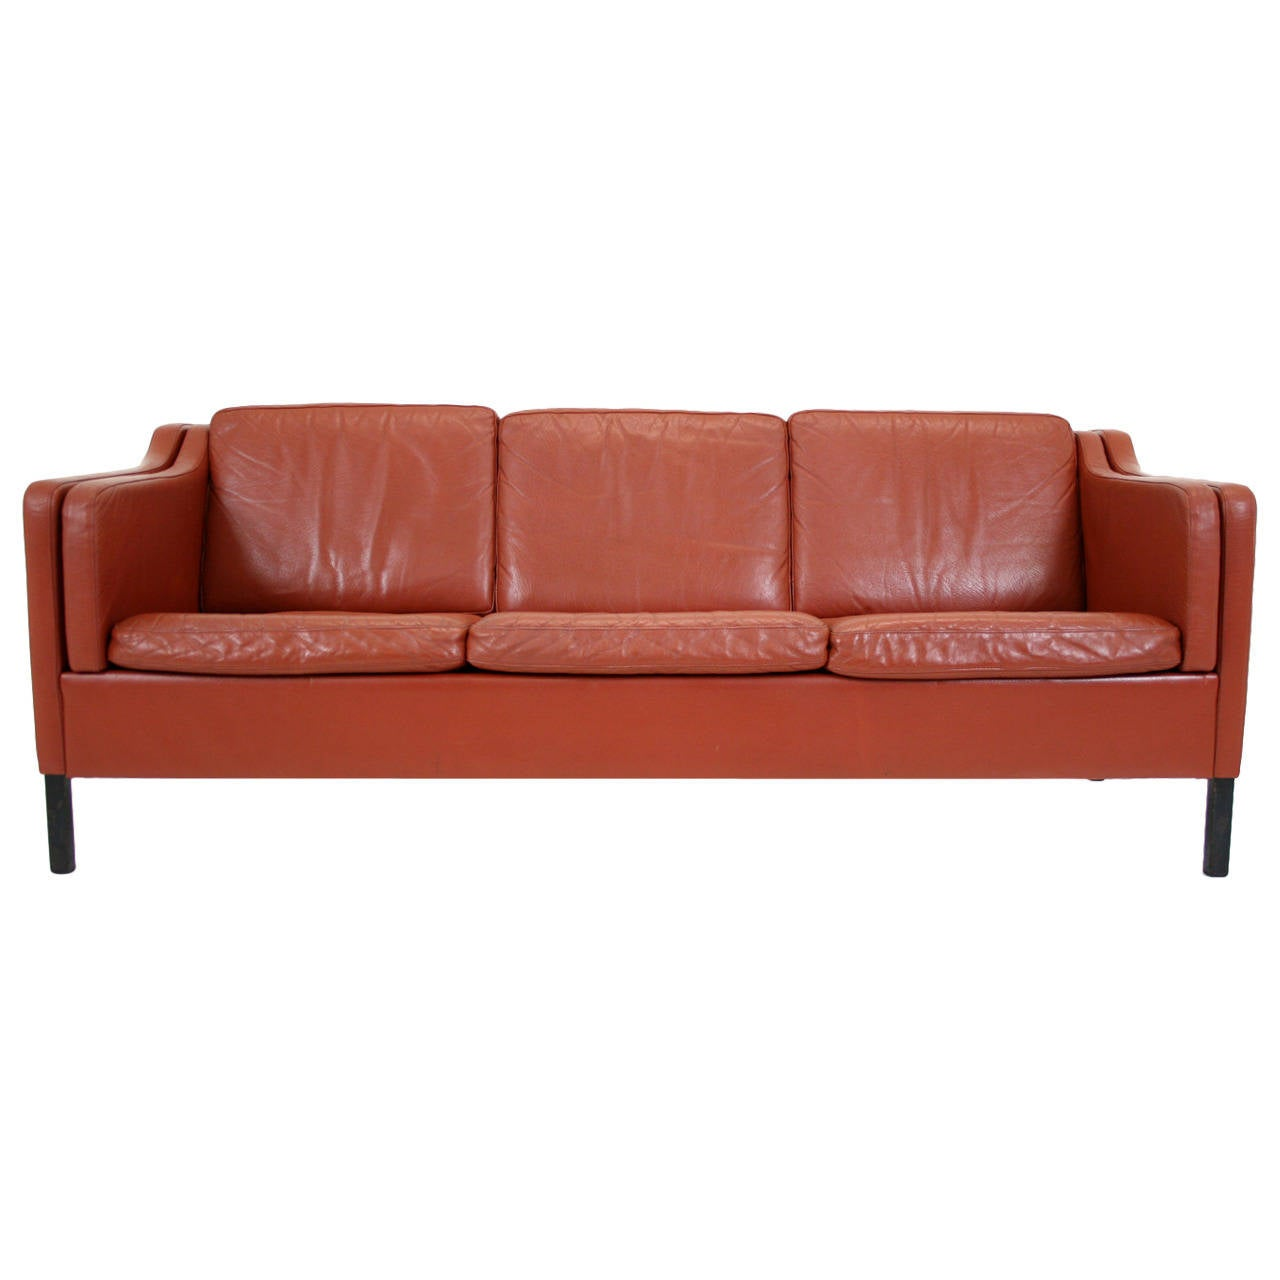 Danish mid century modern leather three seat sofa or for Modern loveseat